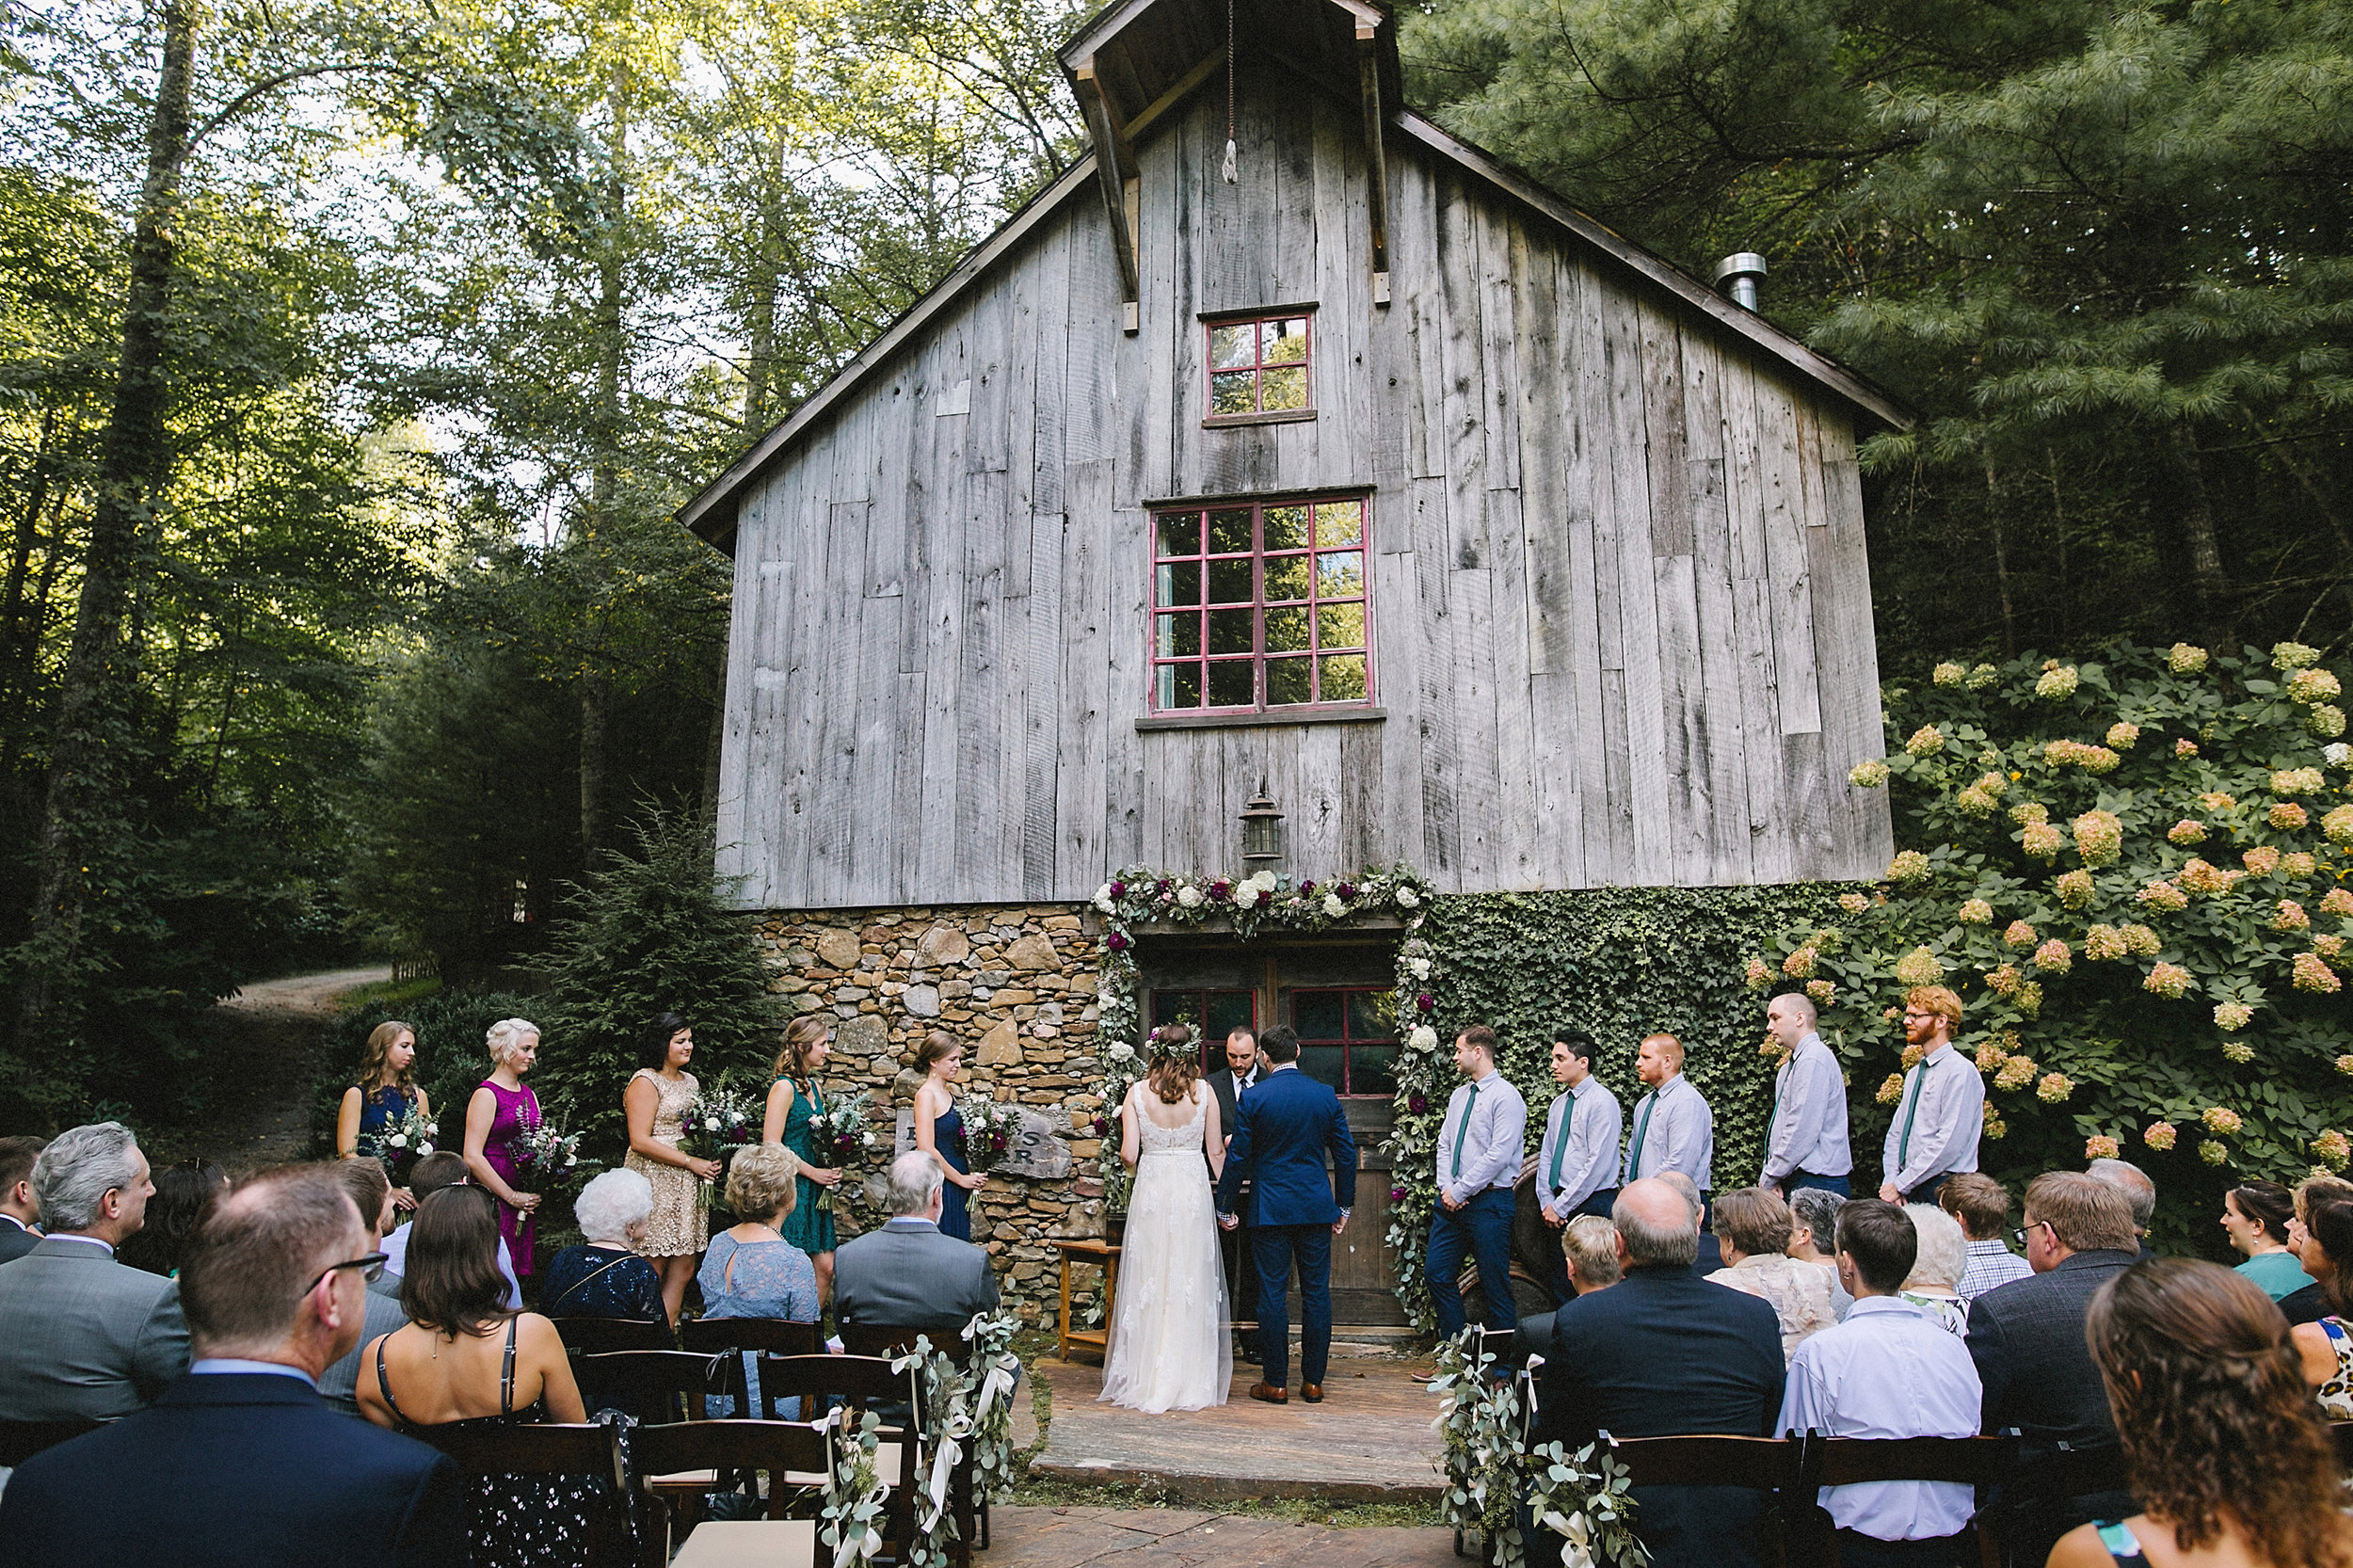 emily chidester photography | Andrew & My Wedding